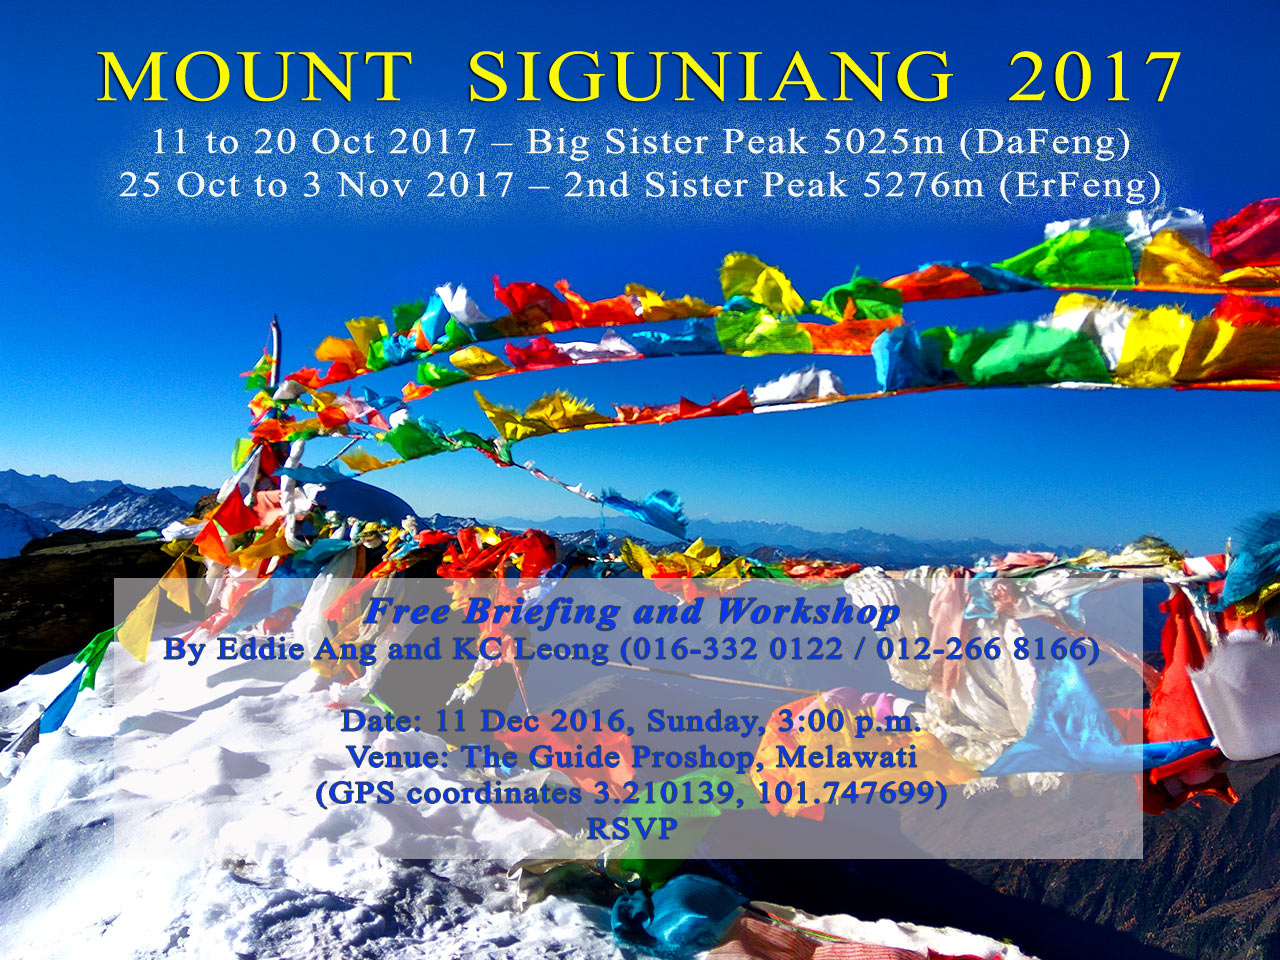 Invitation to hike Mount Siguniang 2017